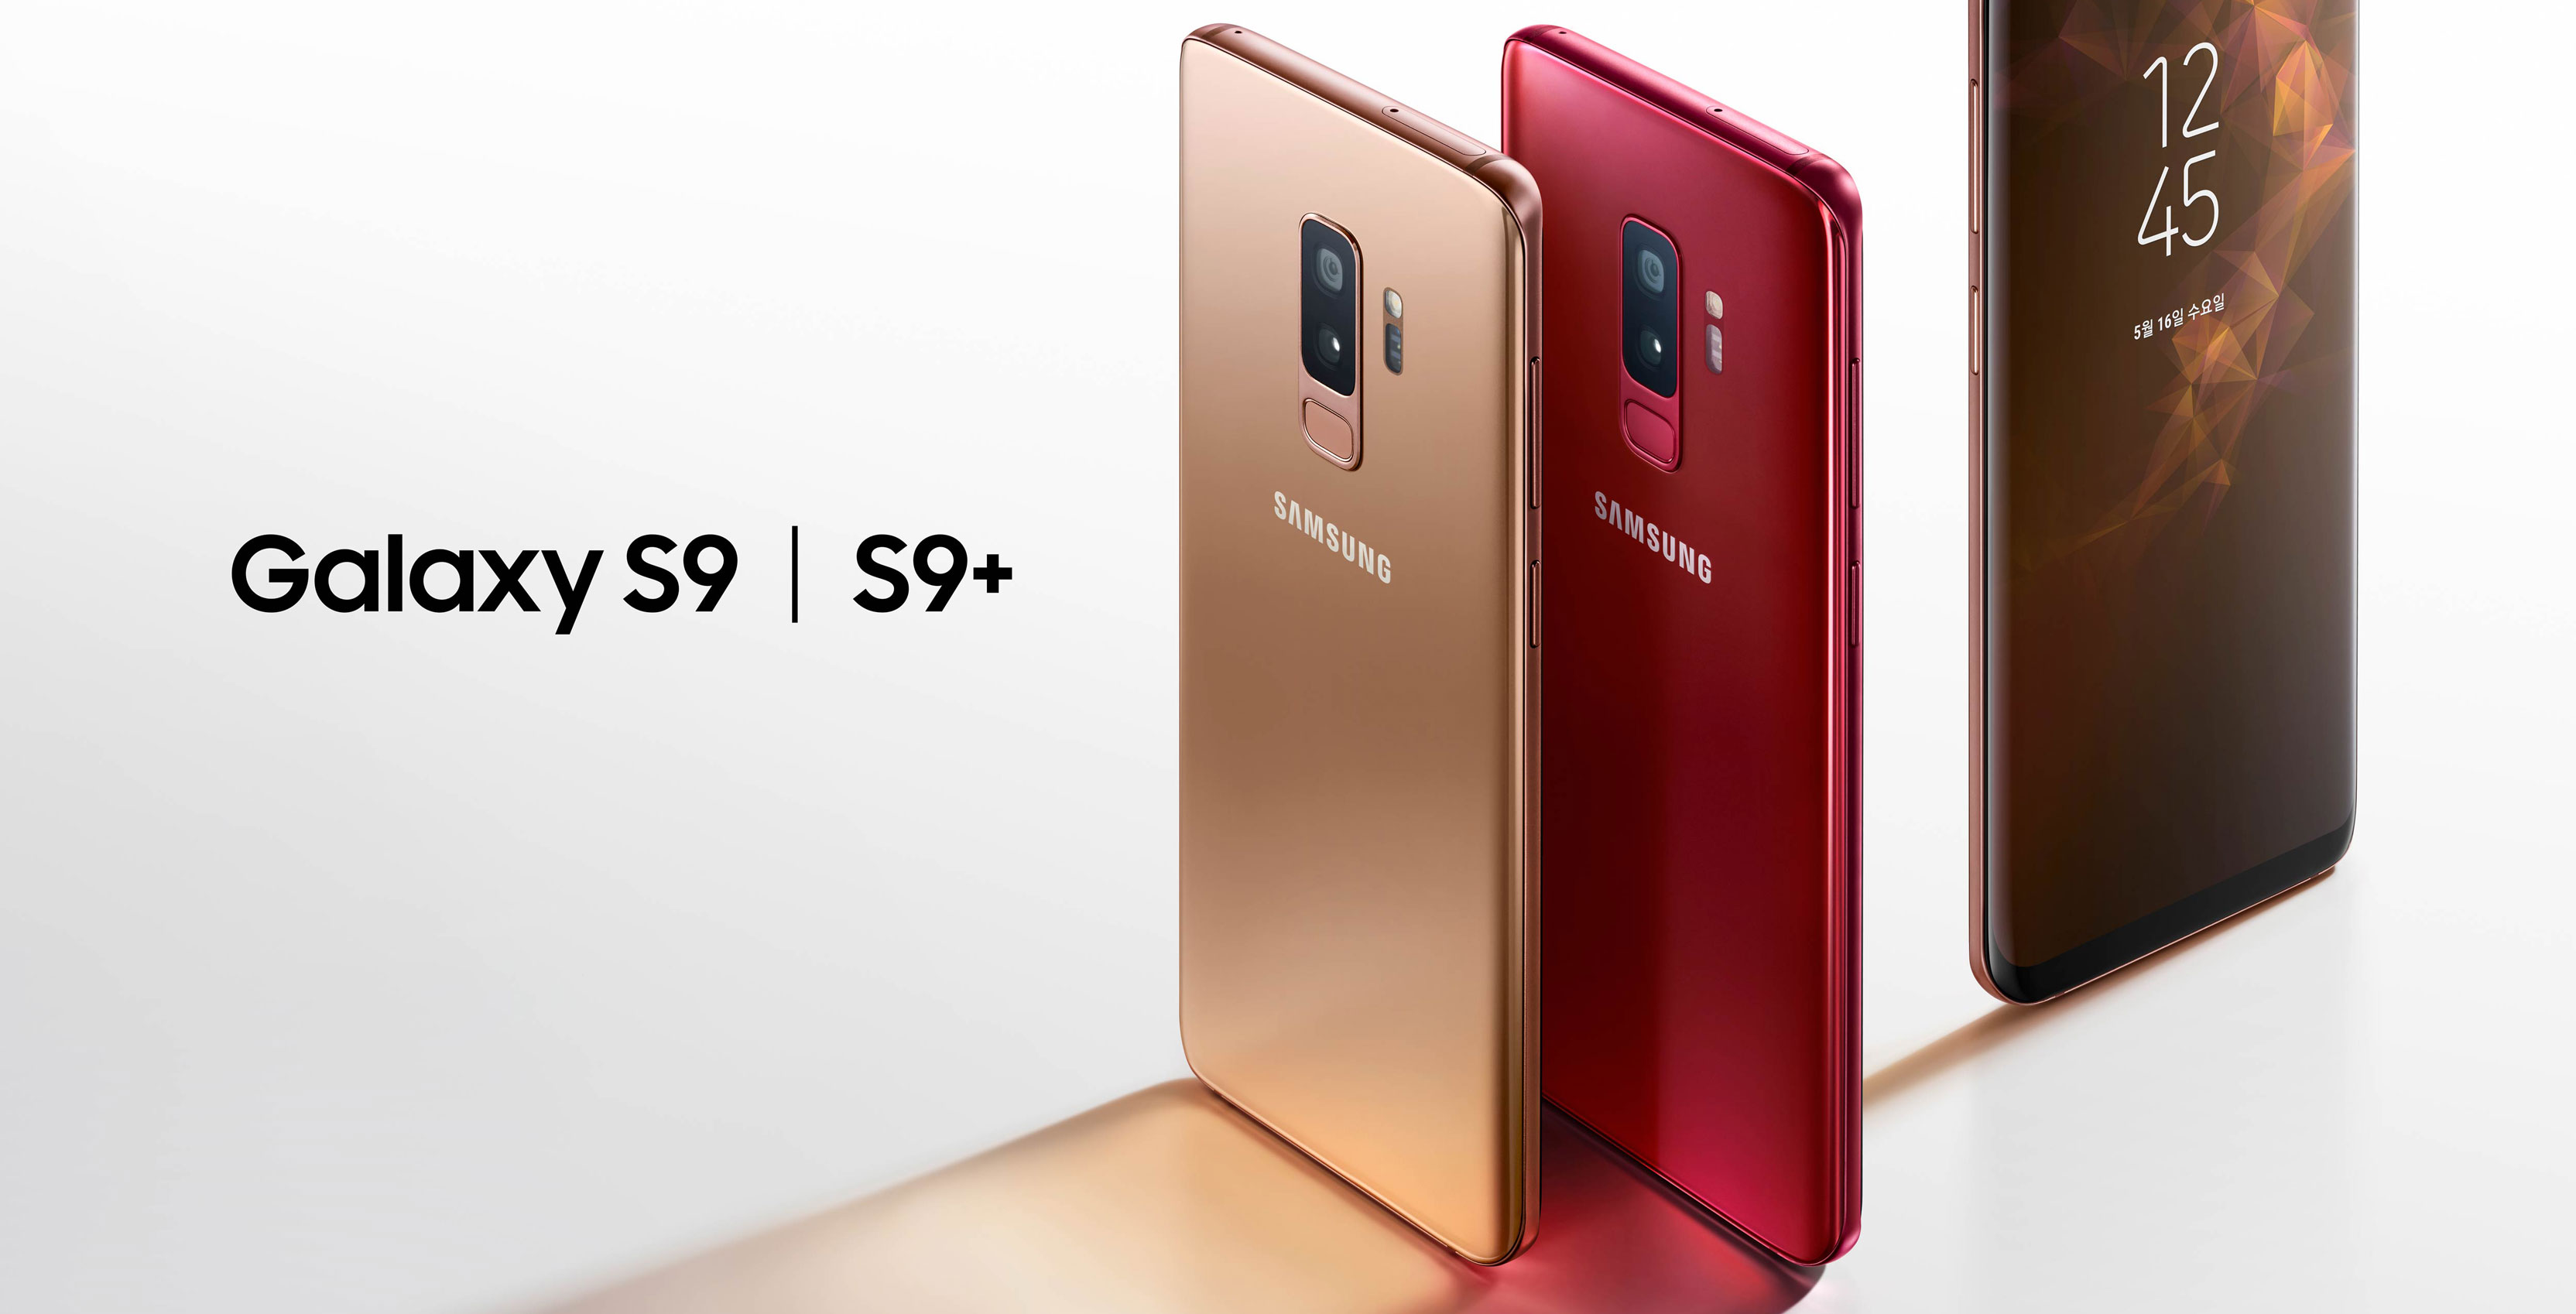 Samsung Galaxy S9 and S9+ in new Sunrise Gold and Burgundy Red colours